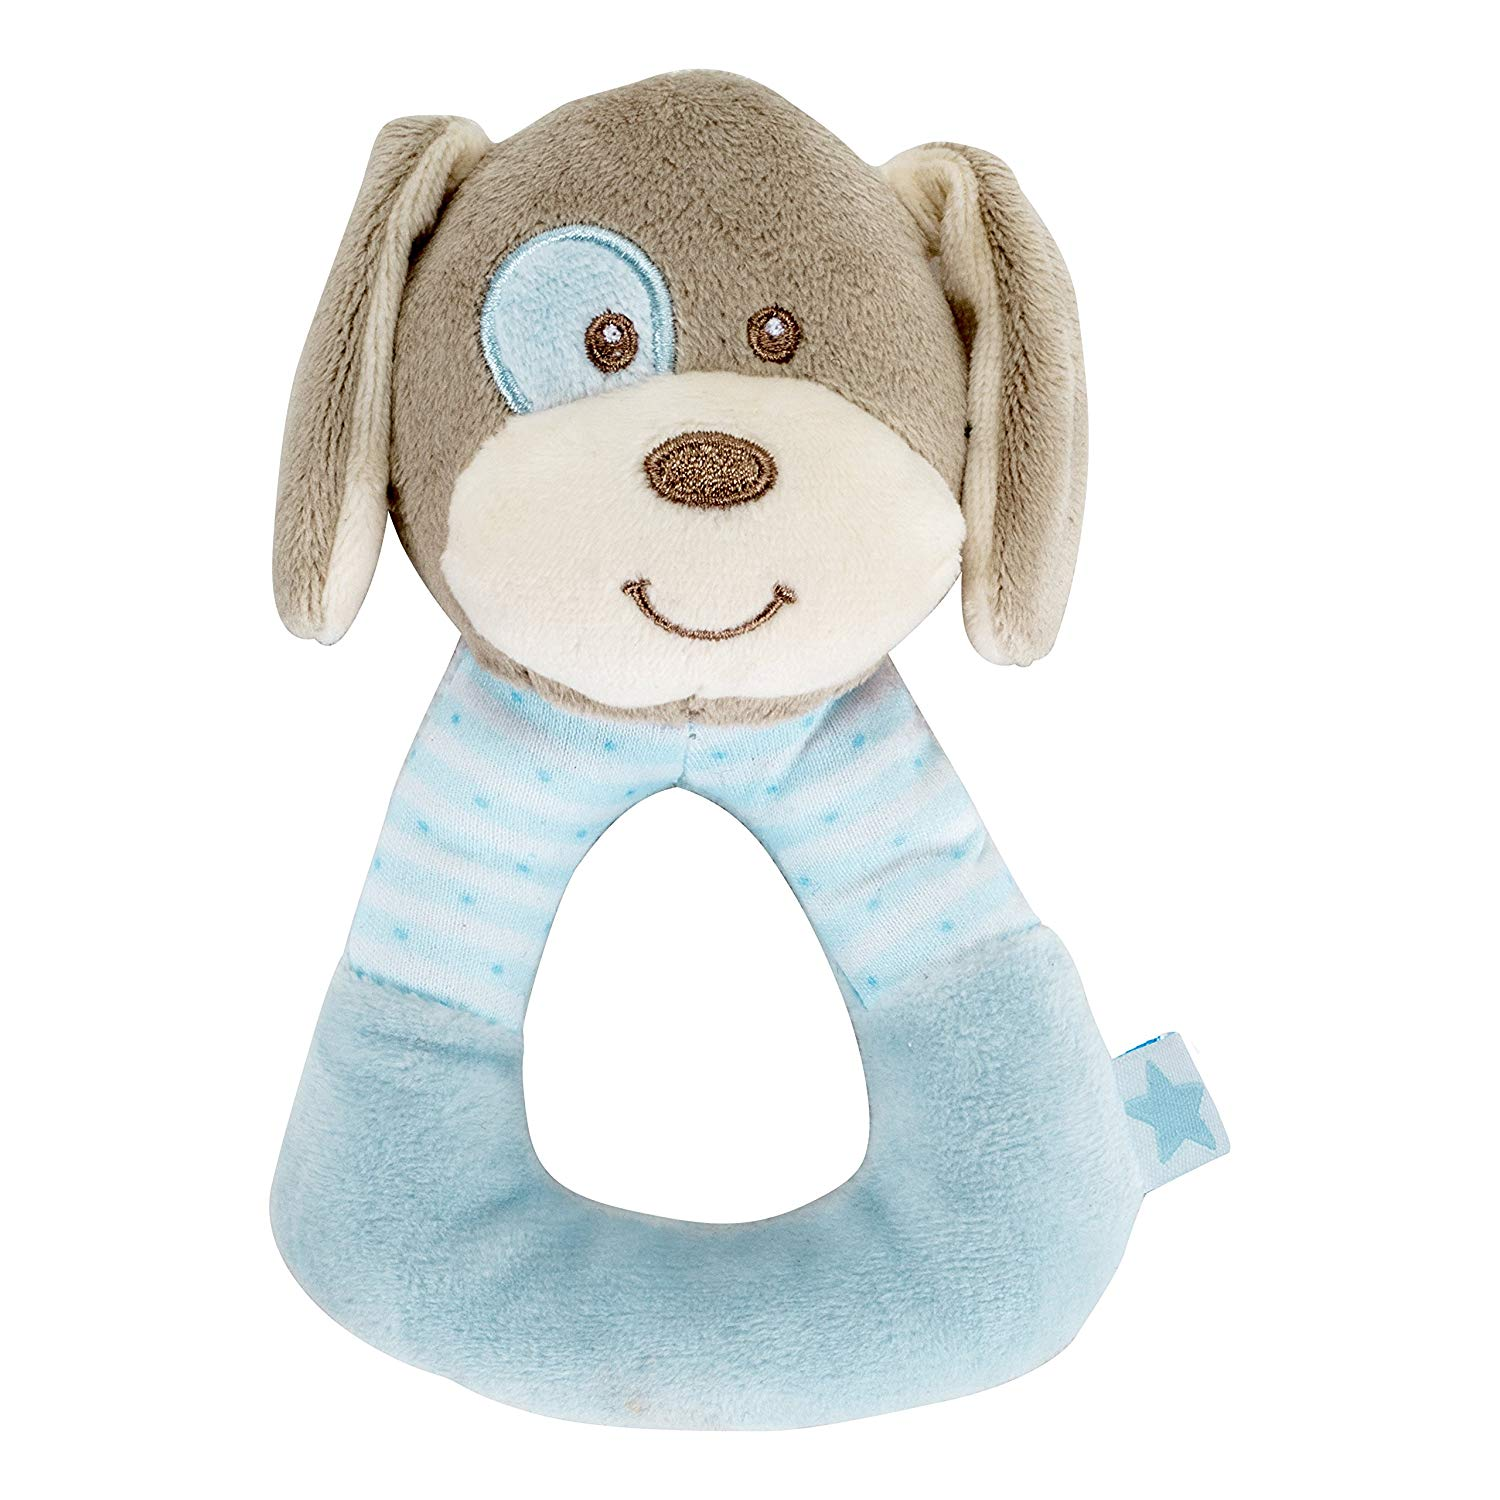 'Fashy 12045 51 Mein Clutching Toy Dog, Multi-Colour